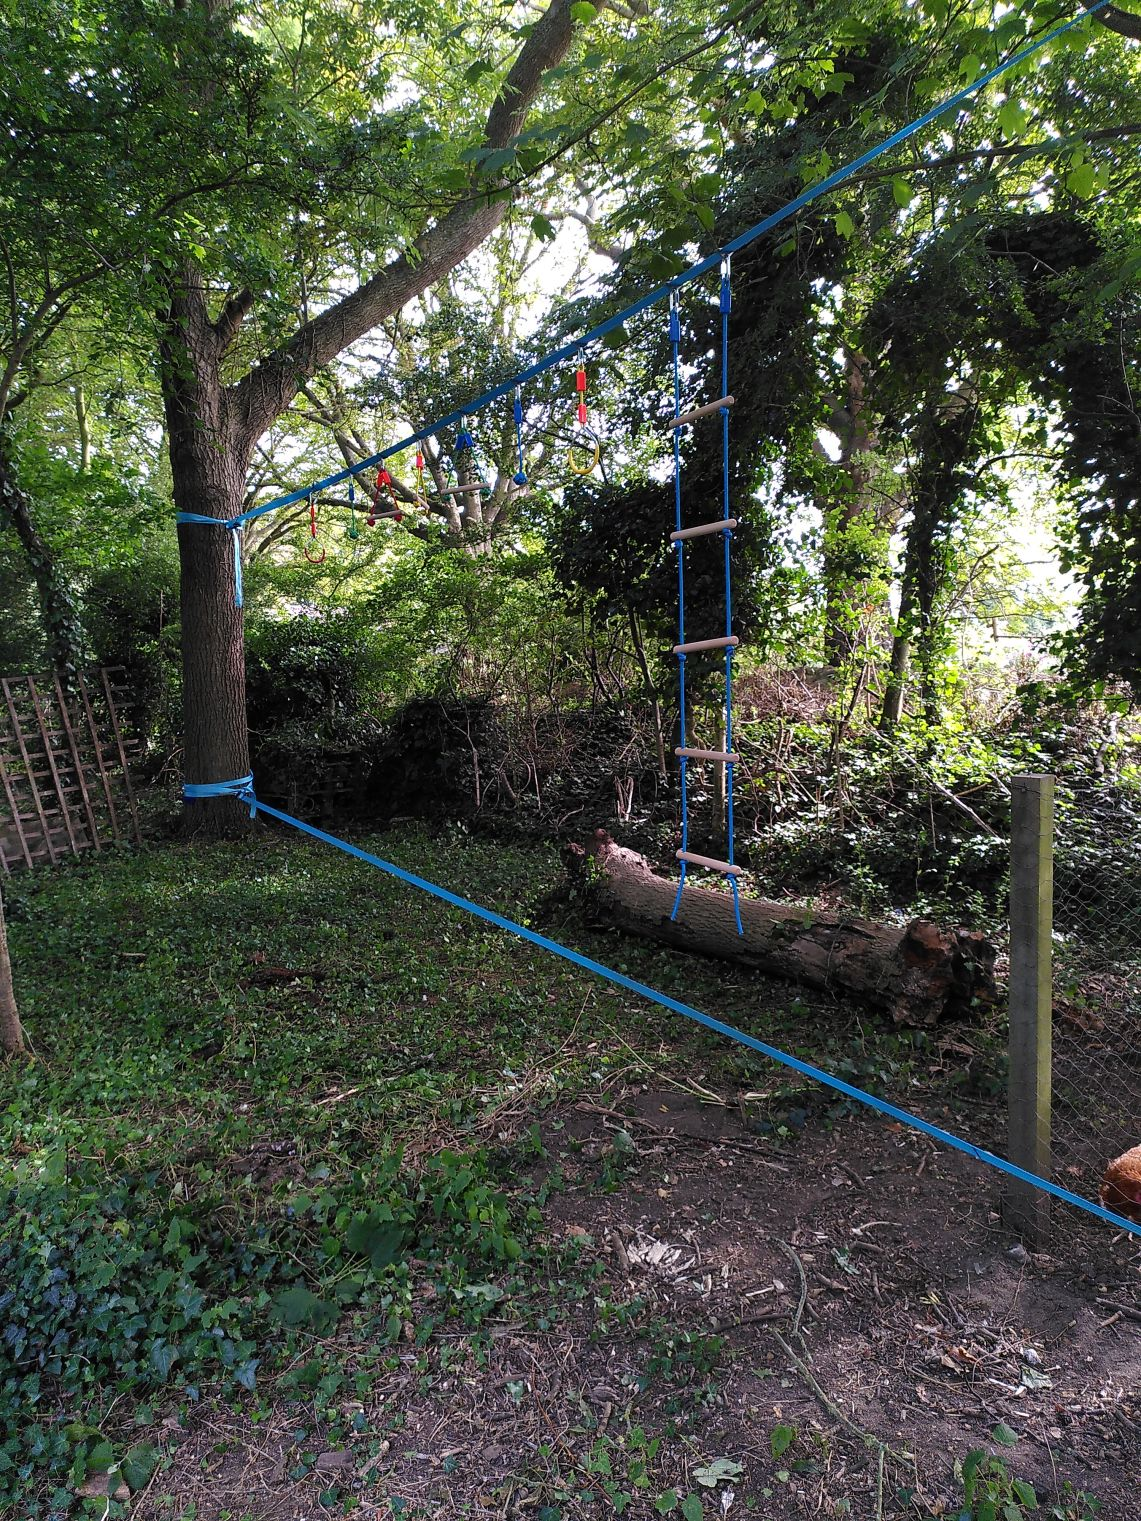 Two slack lines between two trees with various addons to hang onto